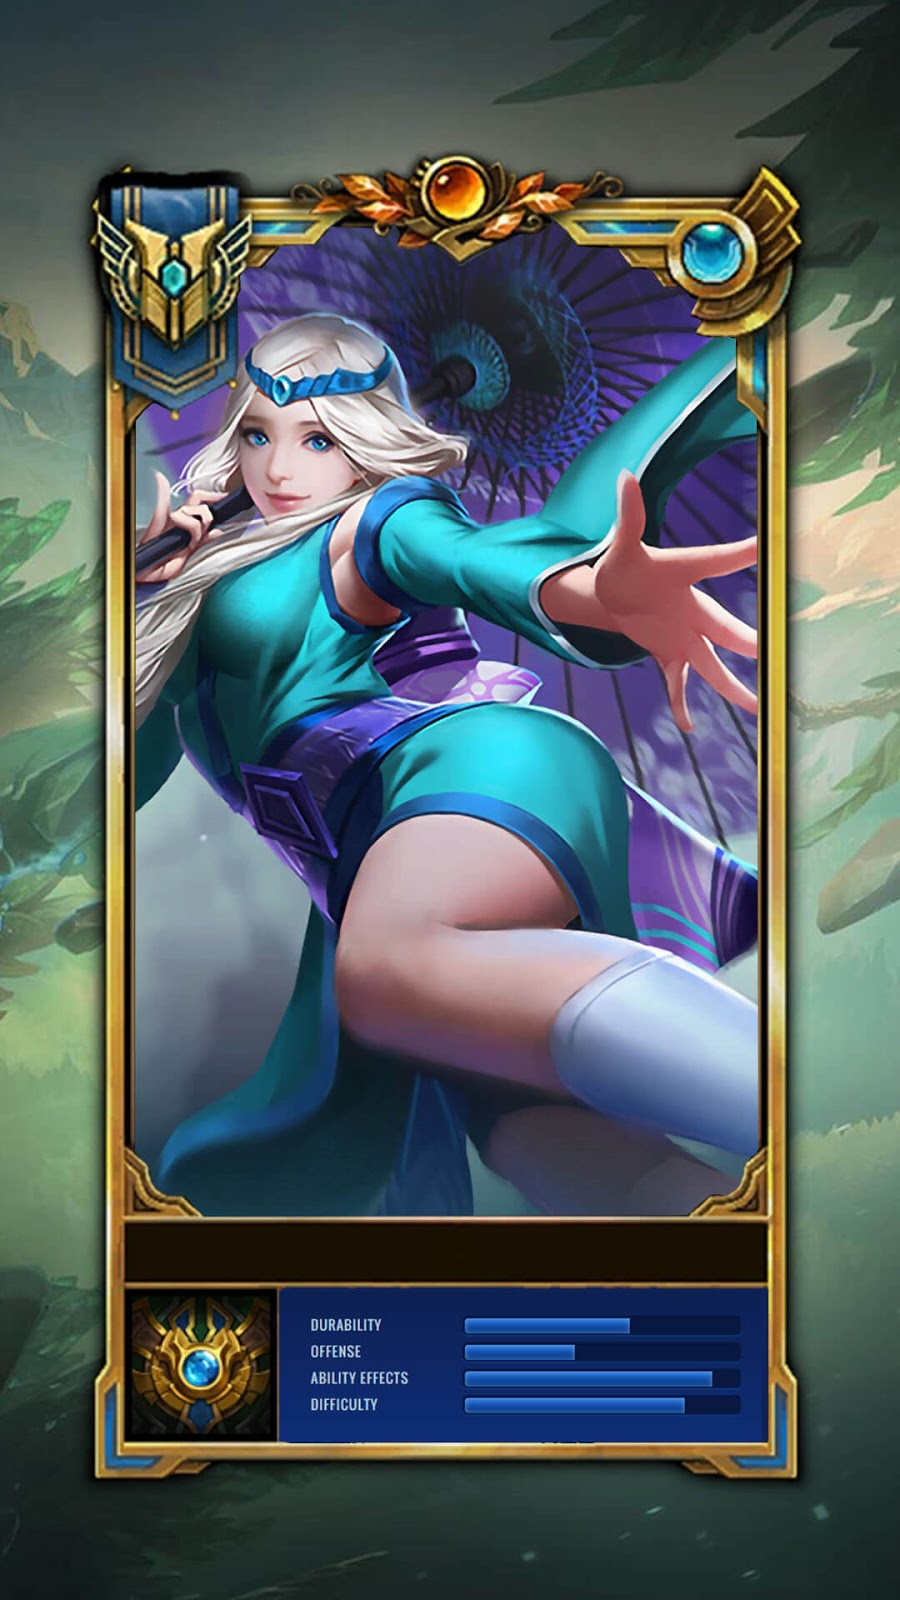 Wallpaper Kagura Onmyouji Master Skin Mobile Legends Full HD for Android and iOS